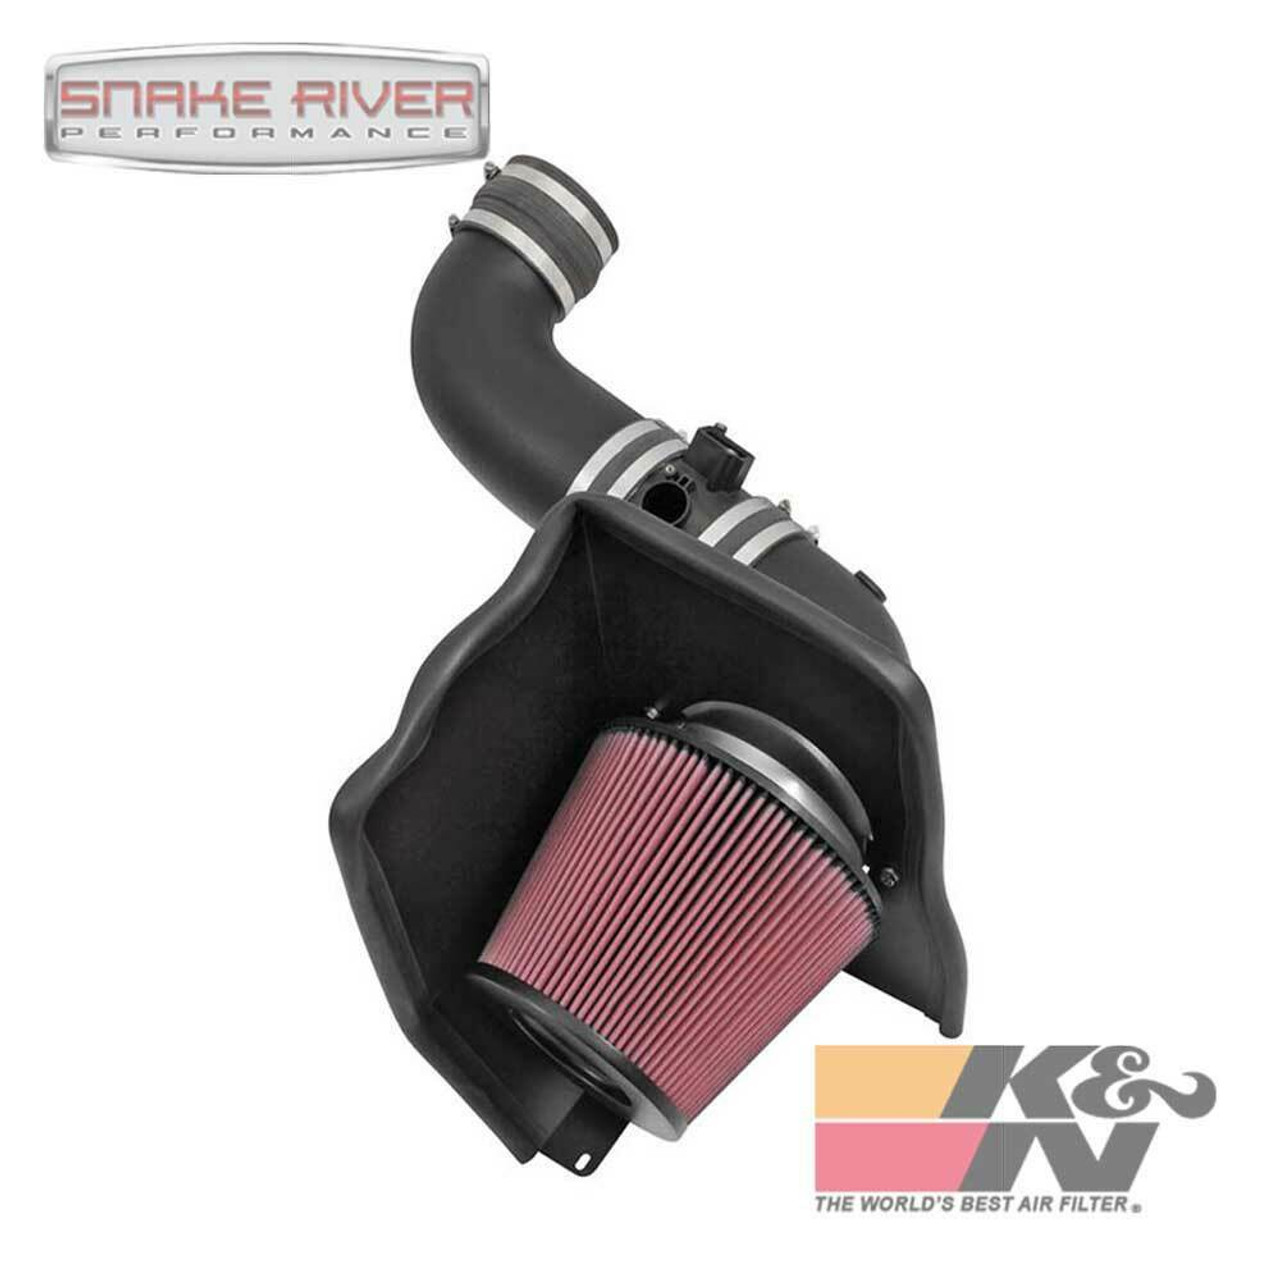 K&N PERFORMANCE AIR INTAKE SYSTEM FOR 2015 CHEVY GMC DURAMAX DIESEL 6.6L 57-3087